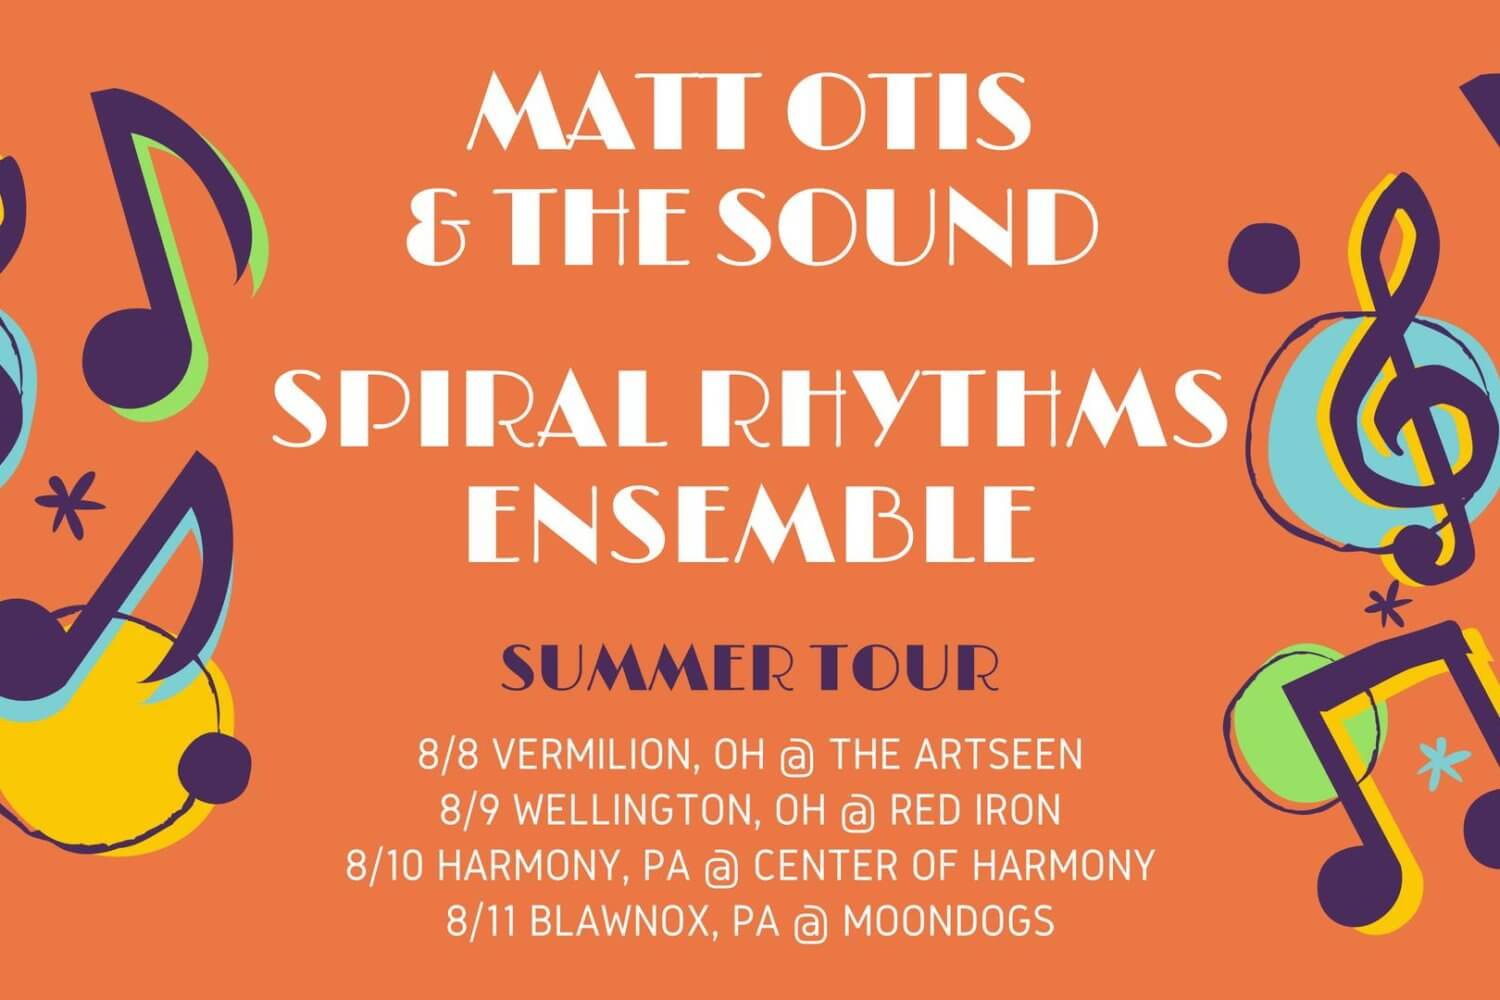 Spiral Rhythm Ensemble Matt Otis and the Sound